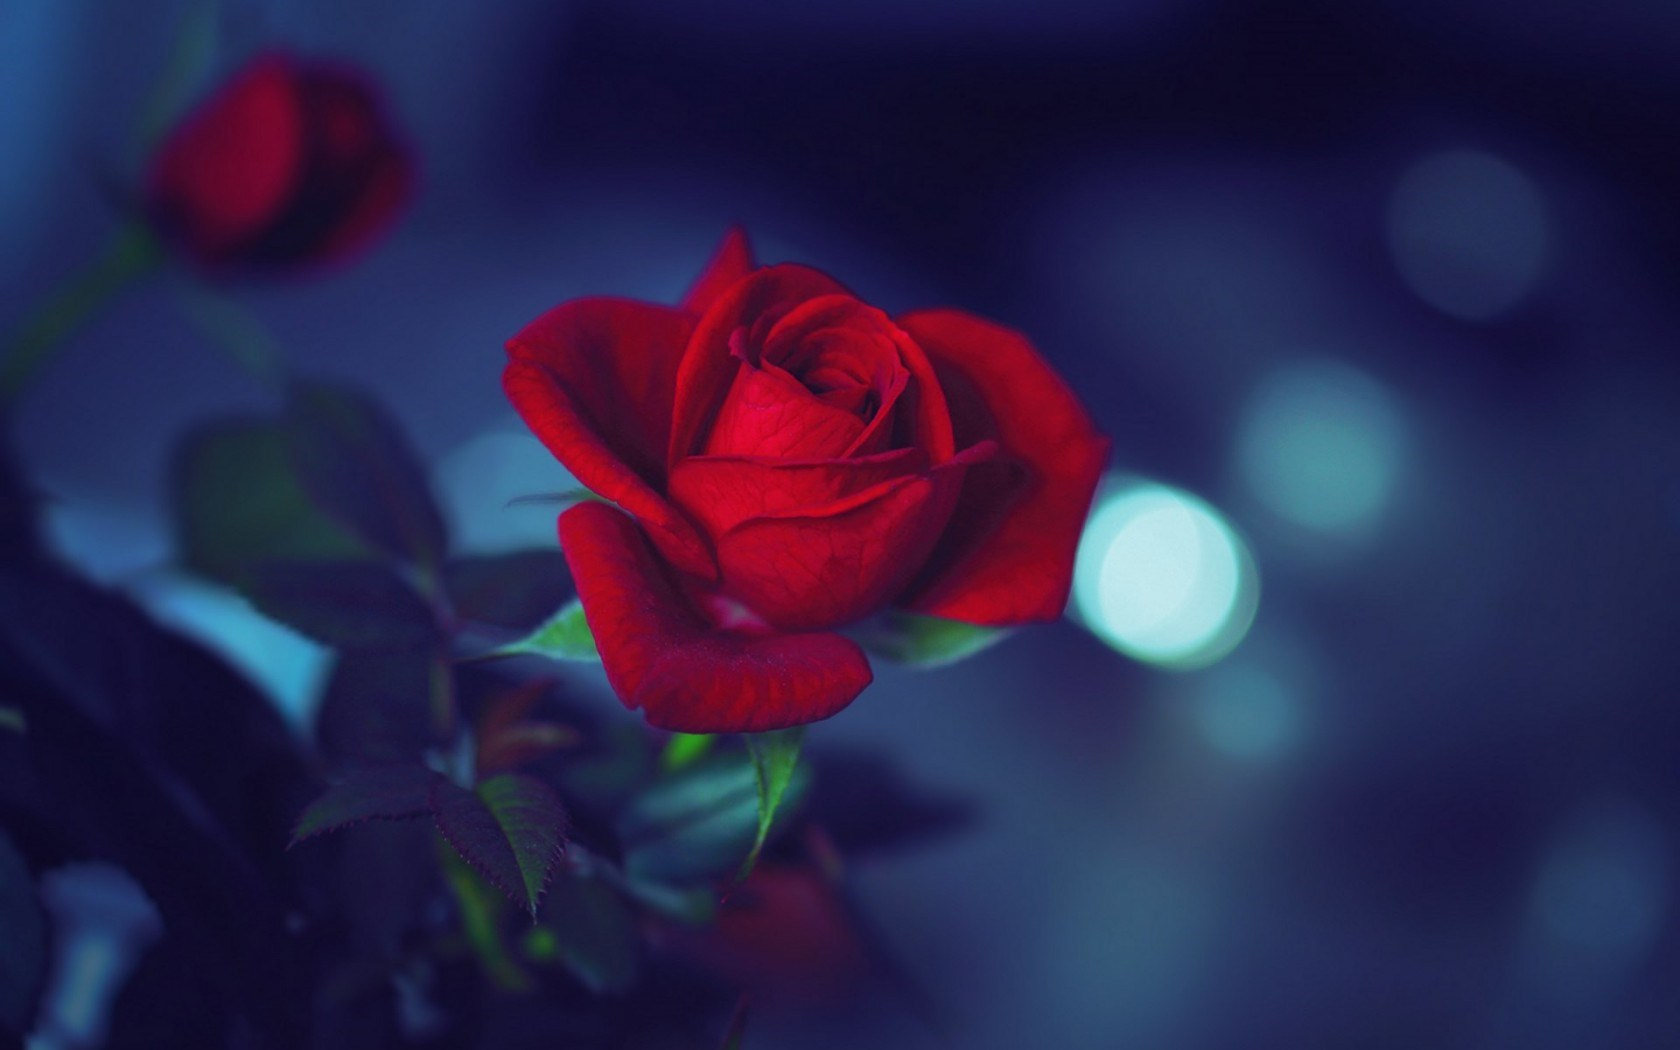 Flower Red Rose Night